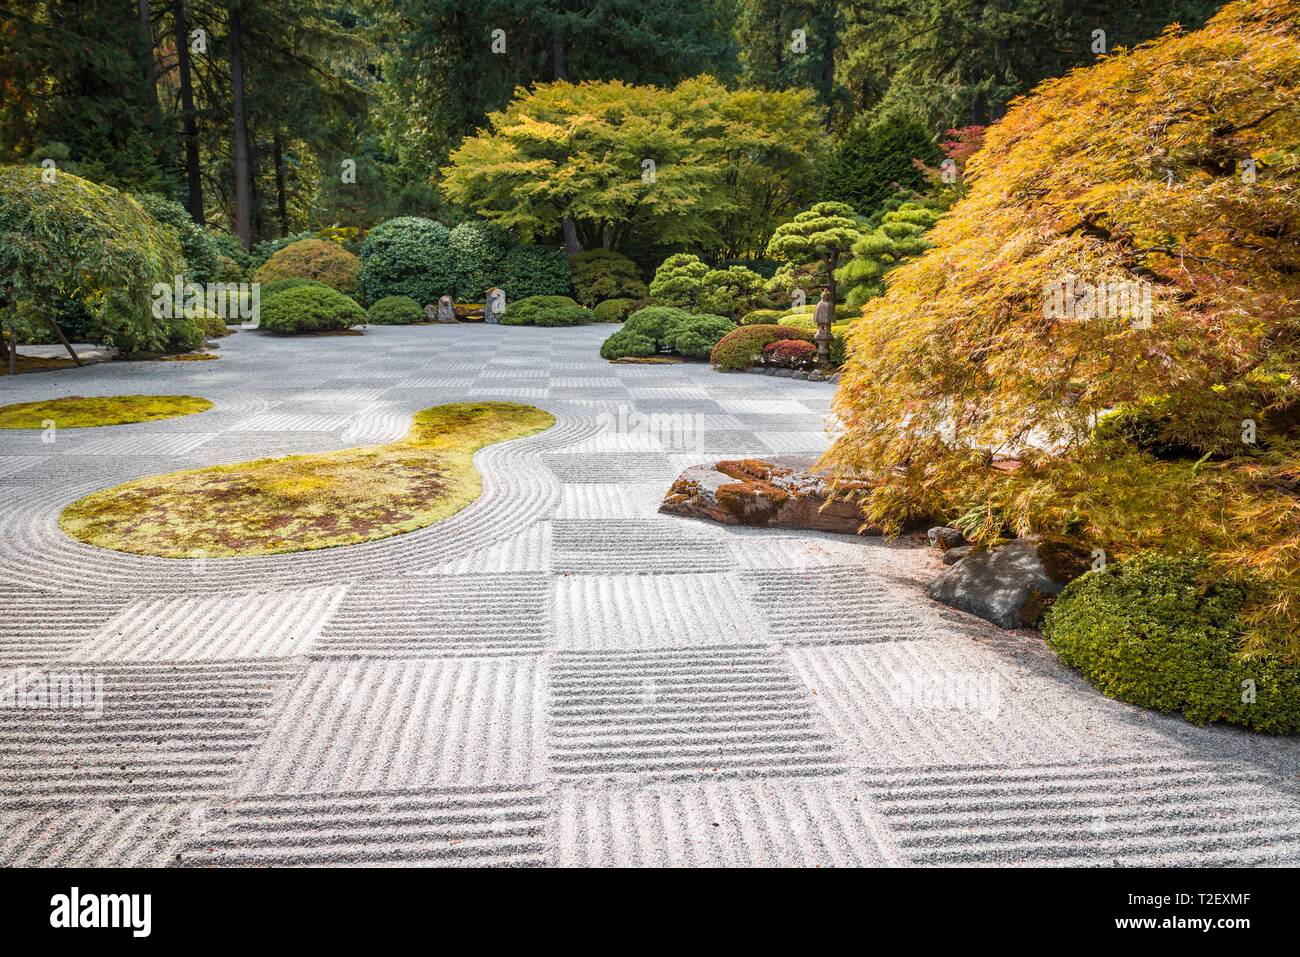 Zen Garden, Japanese Garden With Gravel As A Symbol For Water, Portland,  Oregon, USA